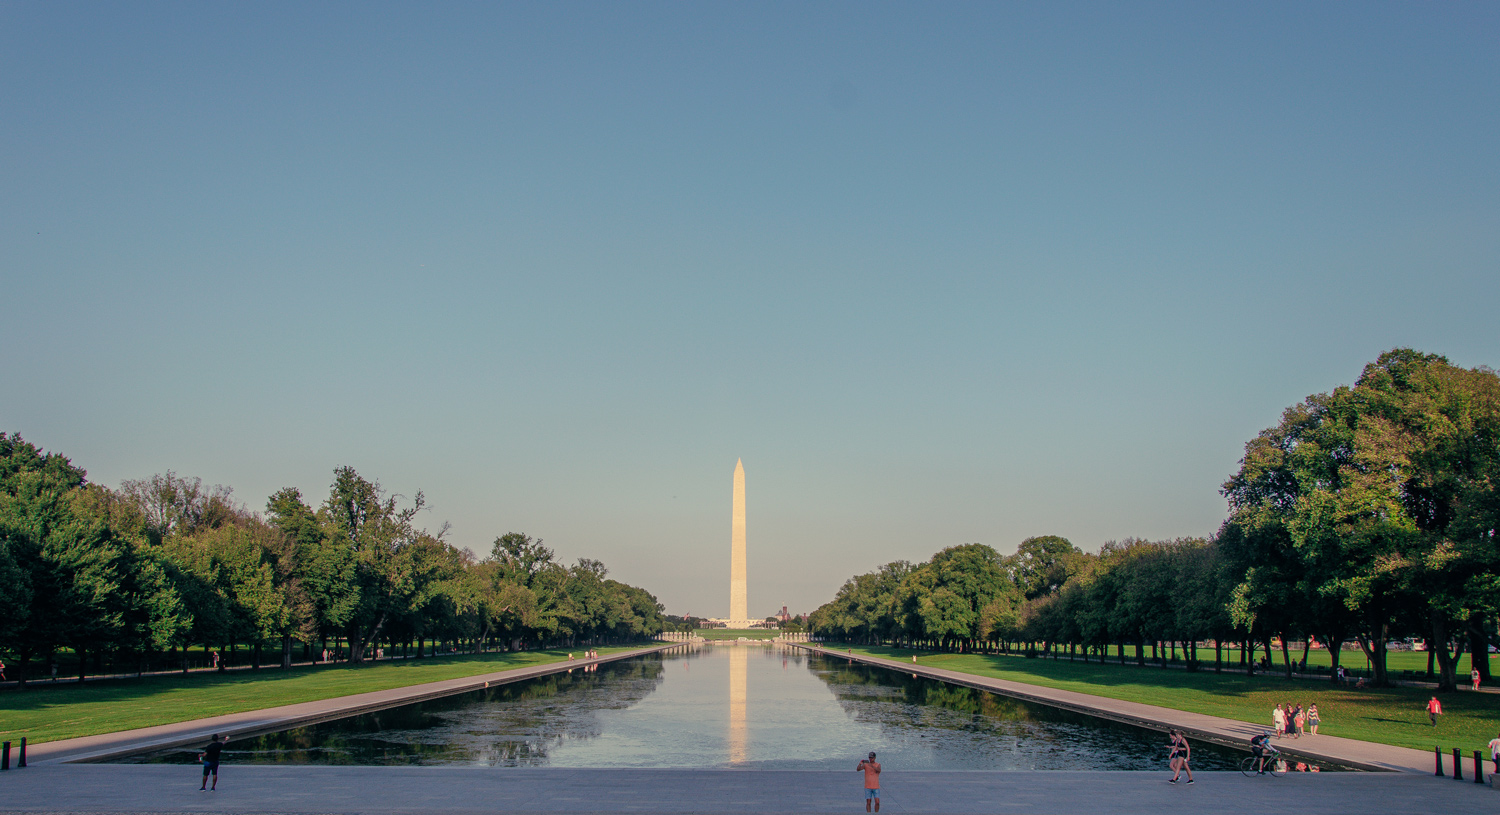 Washington_Monument_Washington_DC_2018_Ruo_Ling_Lu.jpg